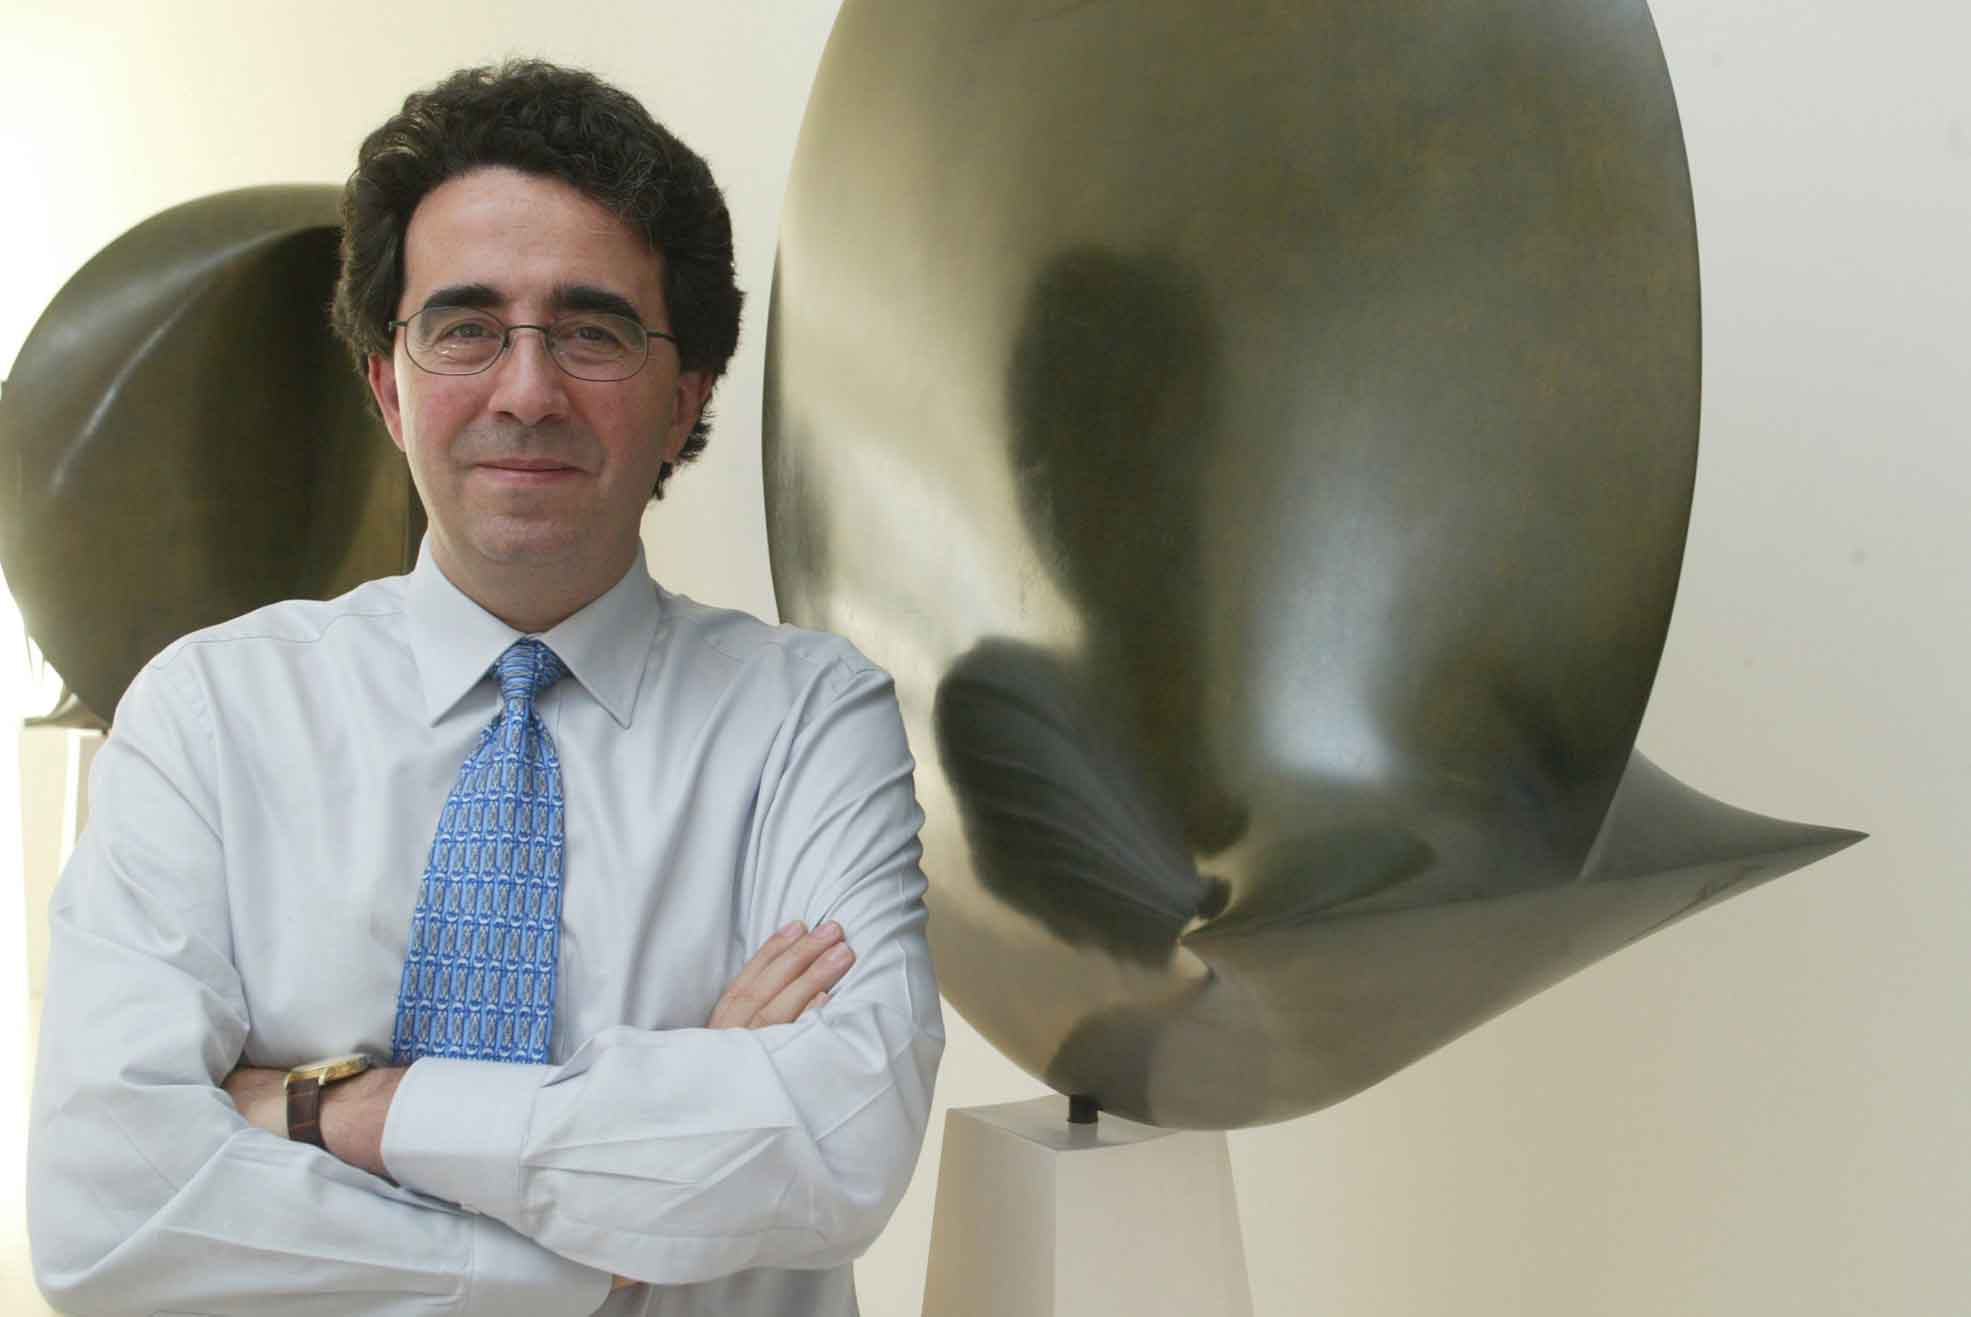 Santiago Calatrava, Architect and Engineer